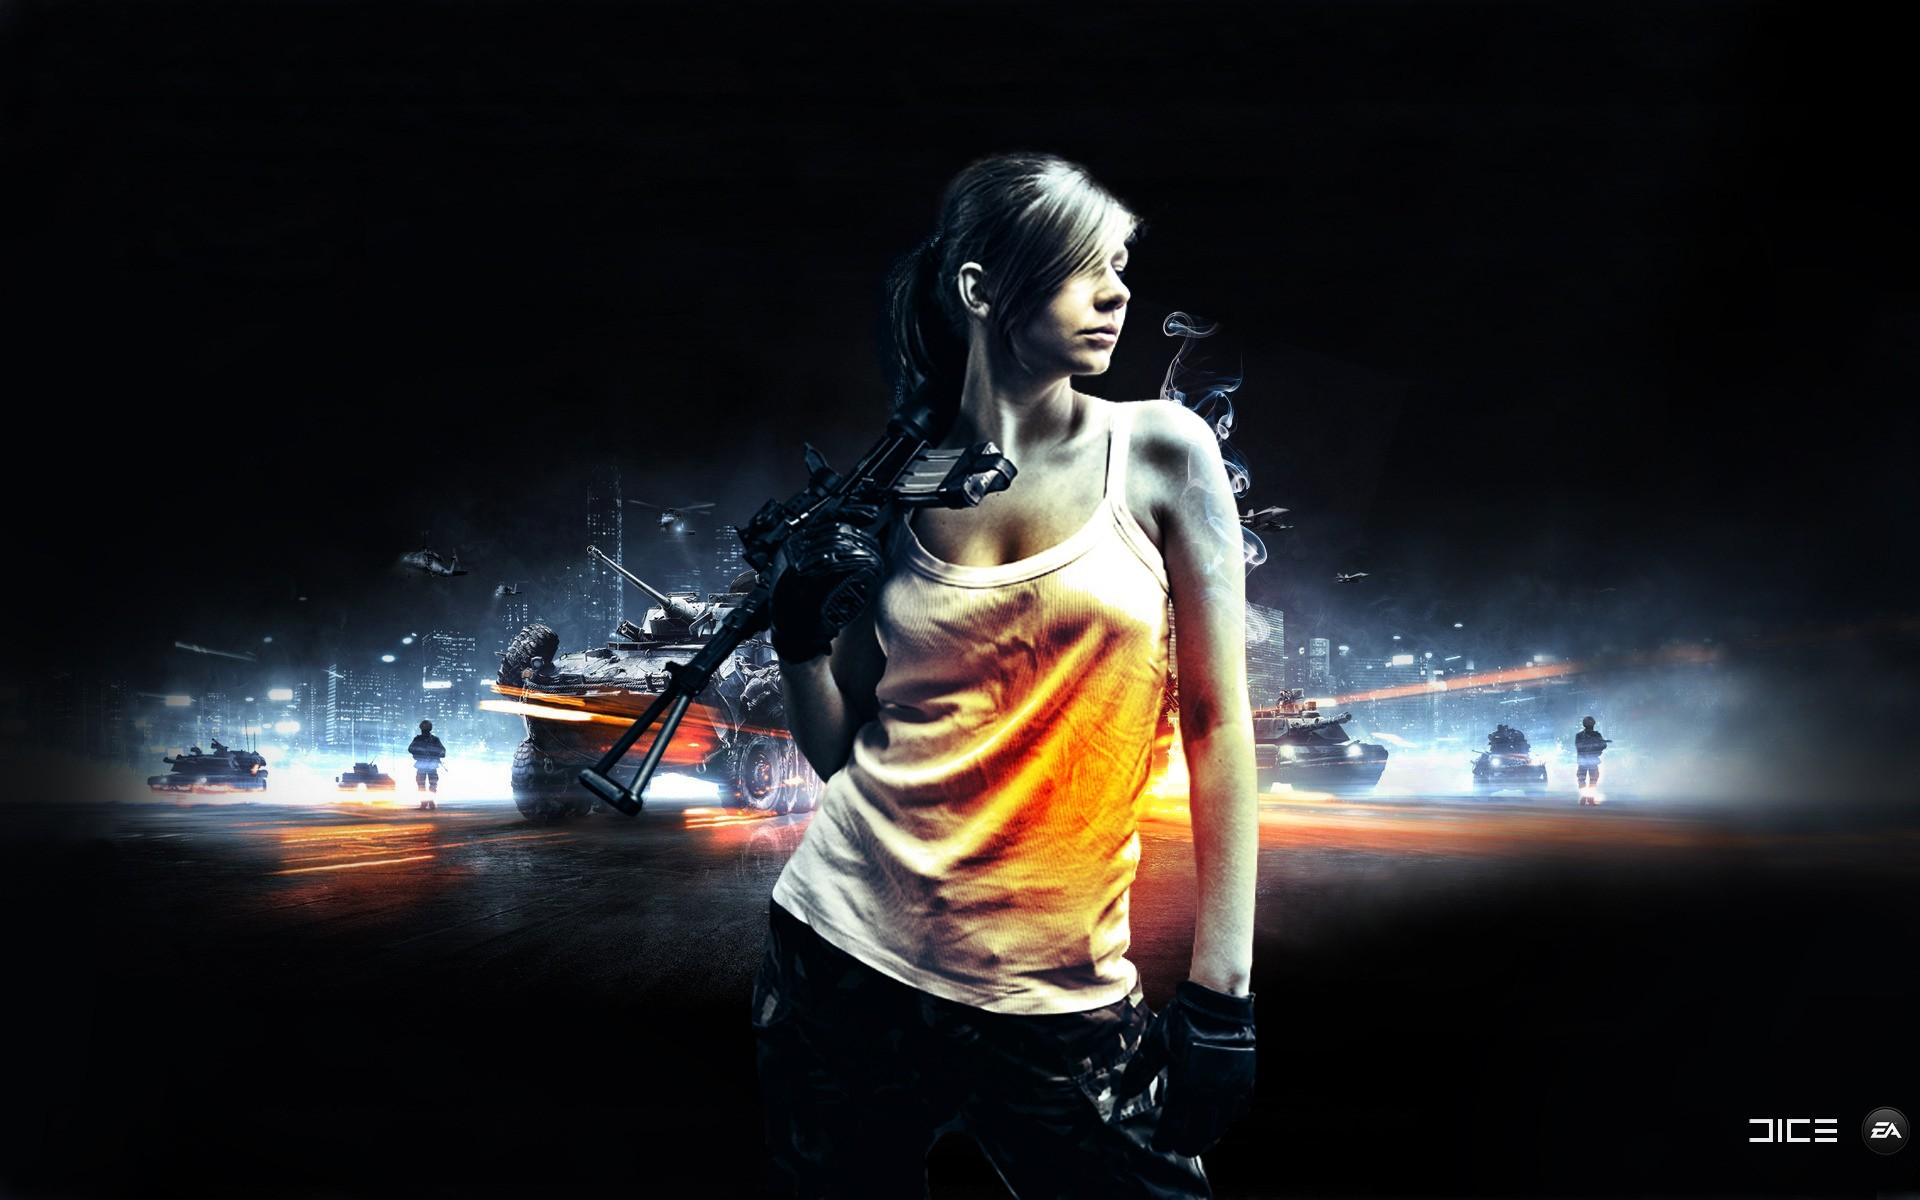 1920x1200 191 Battlefield 3 HD Wallpapers | Backgrounds - Wallpaper Abyss - Page 2